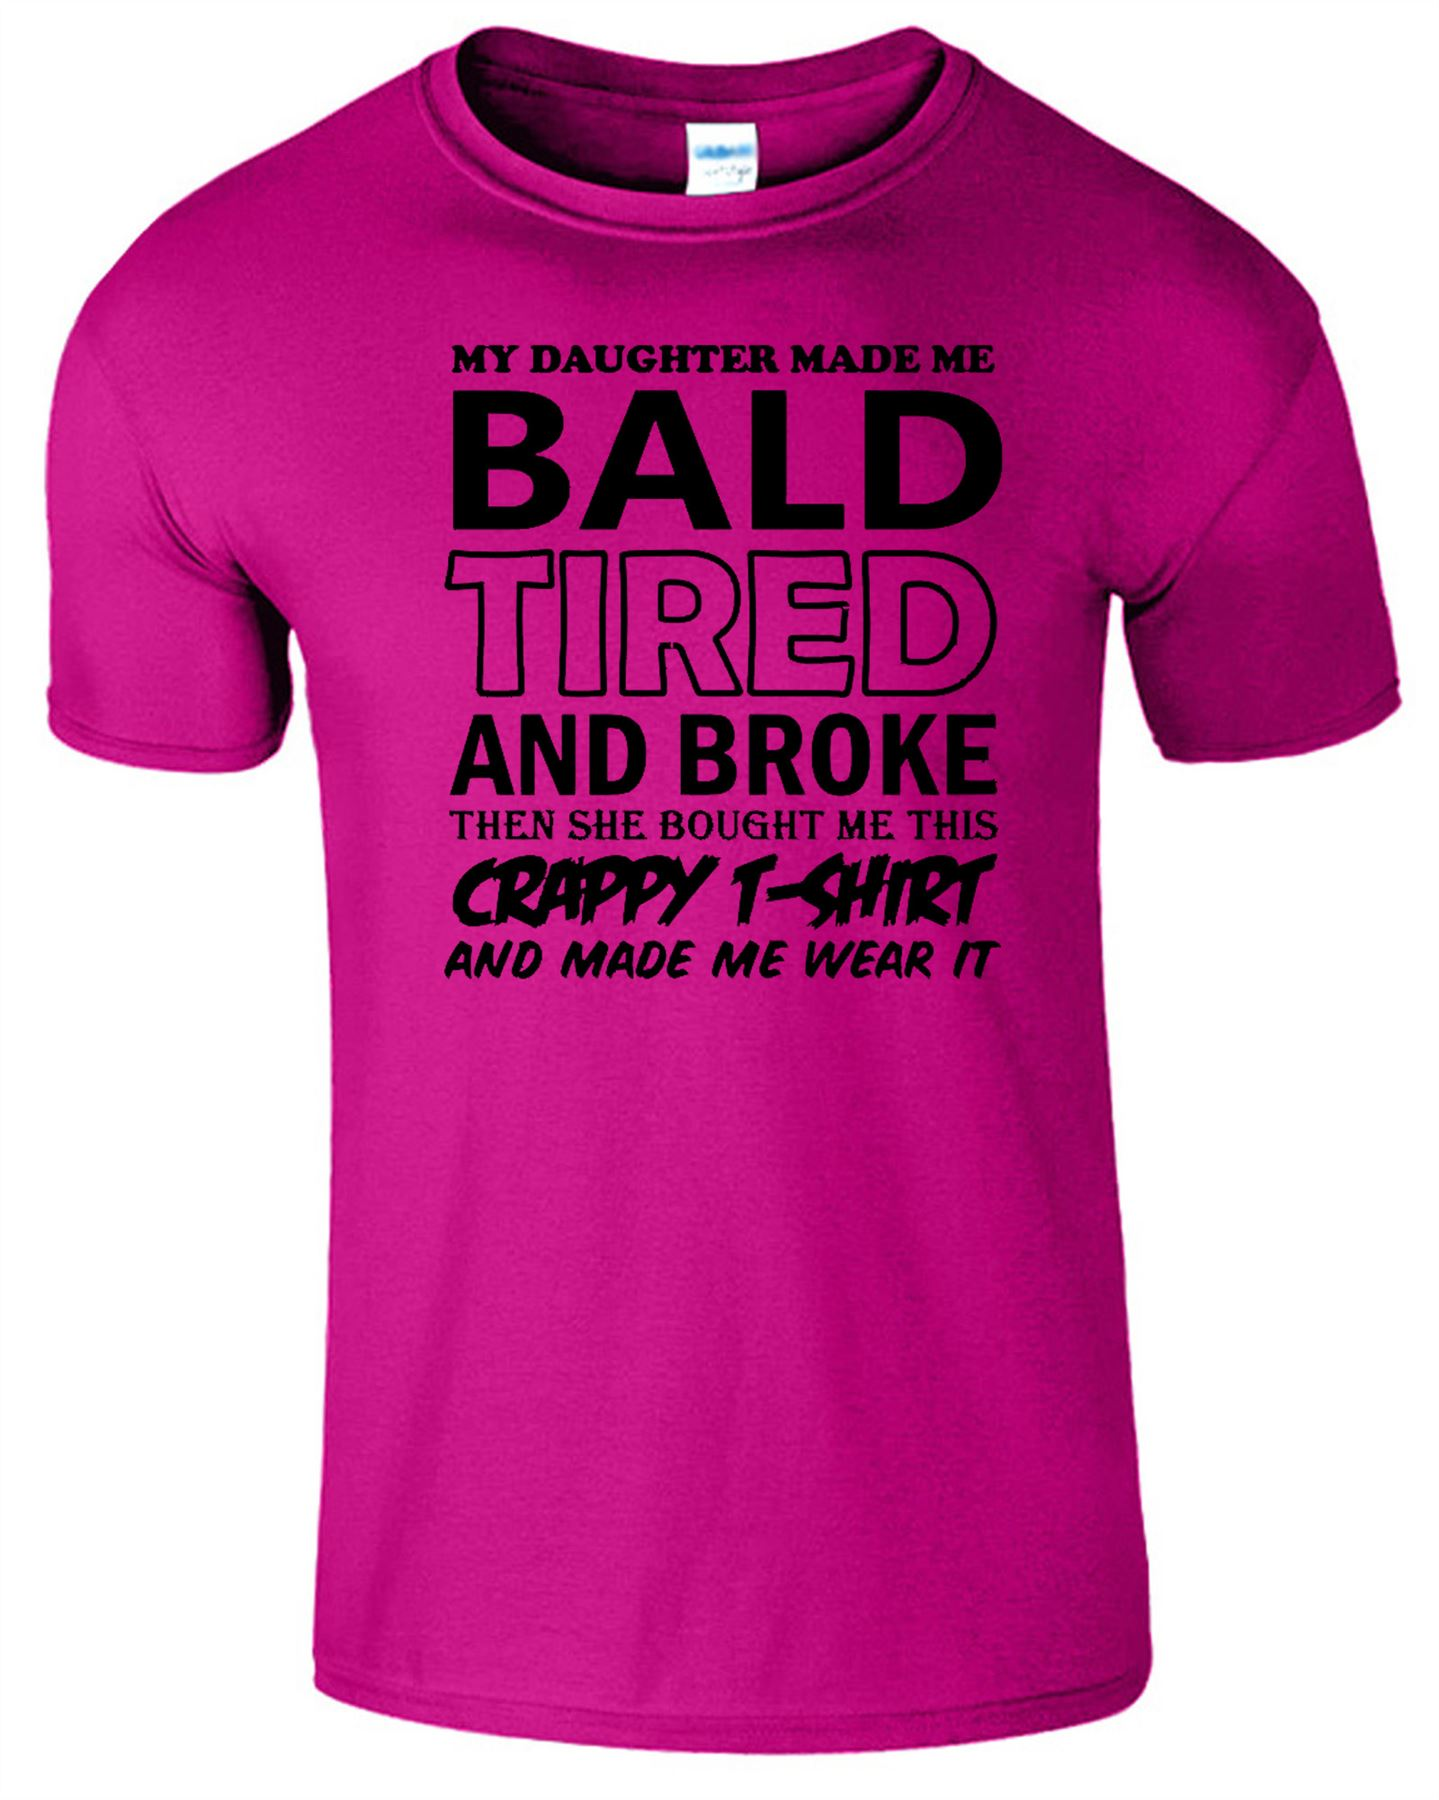 My Daughter Made Me Bald Mens Funny T Shirt Fathers Day//Christmas Gift Dad